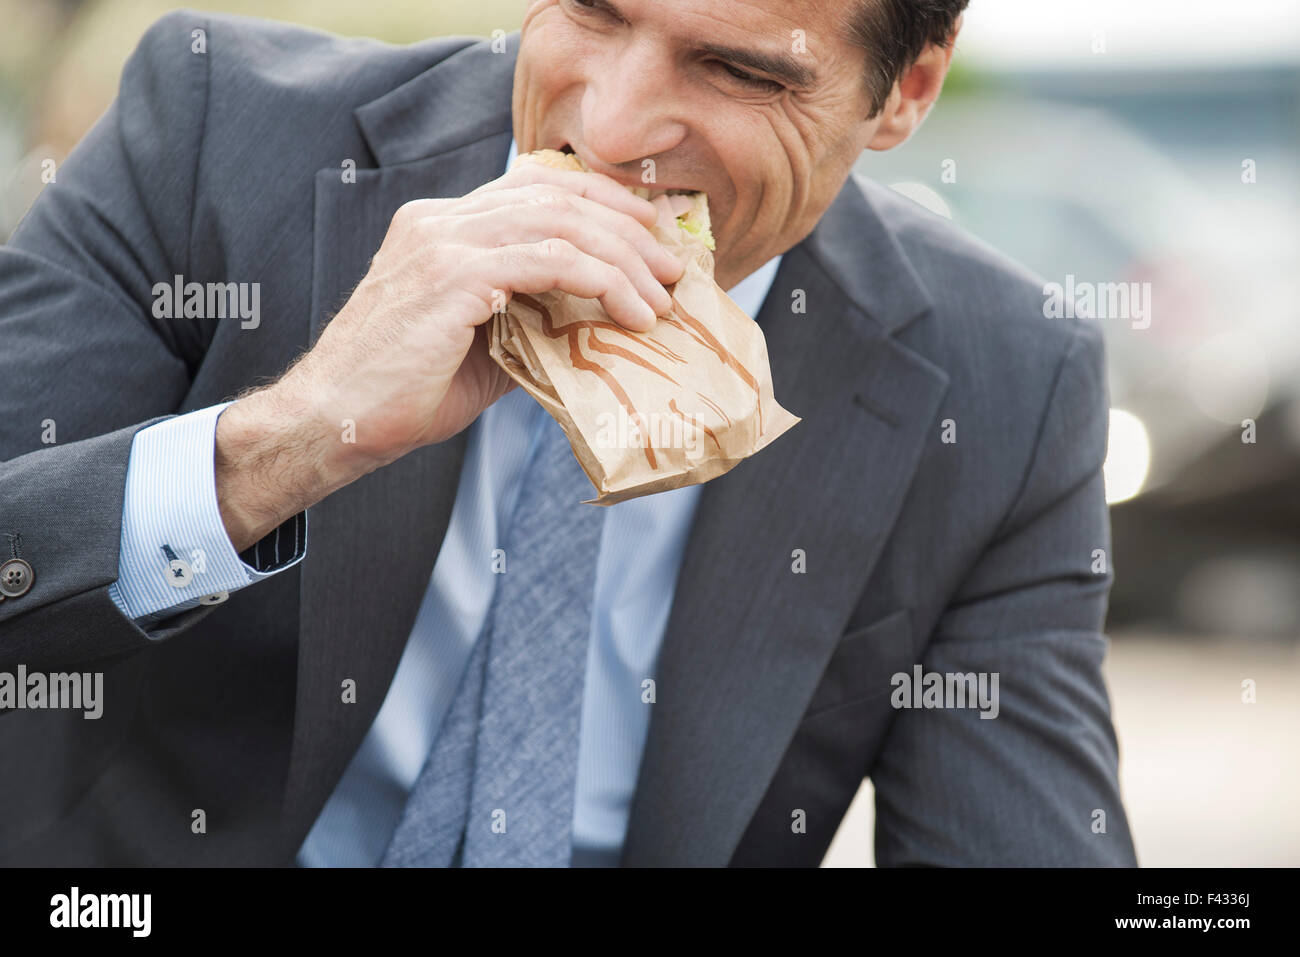 Businessman eating sandwich on the move - Stock Image